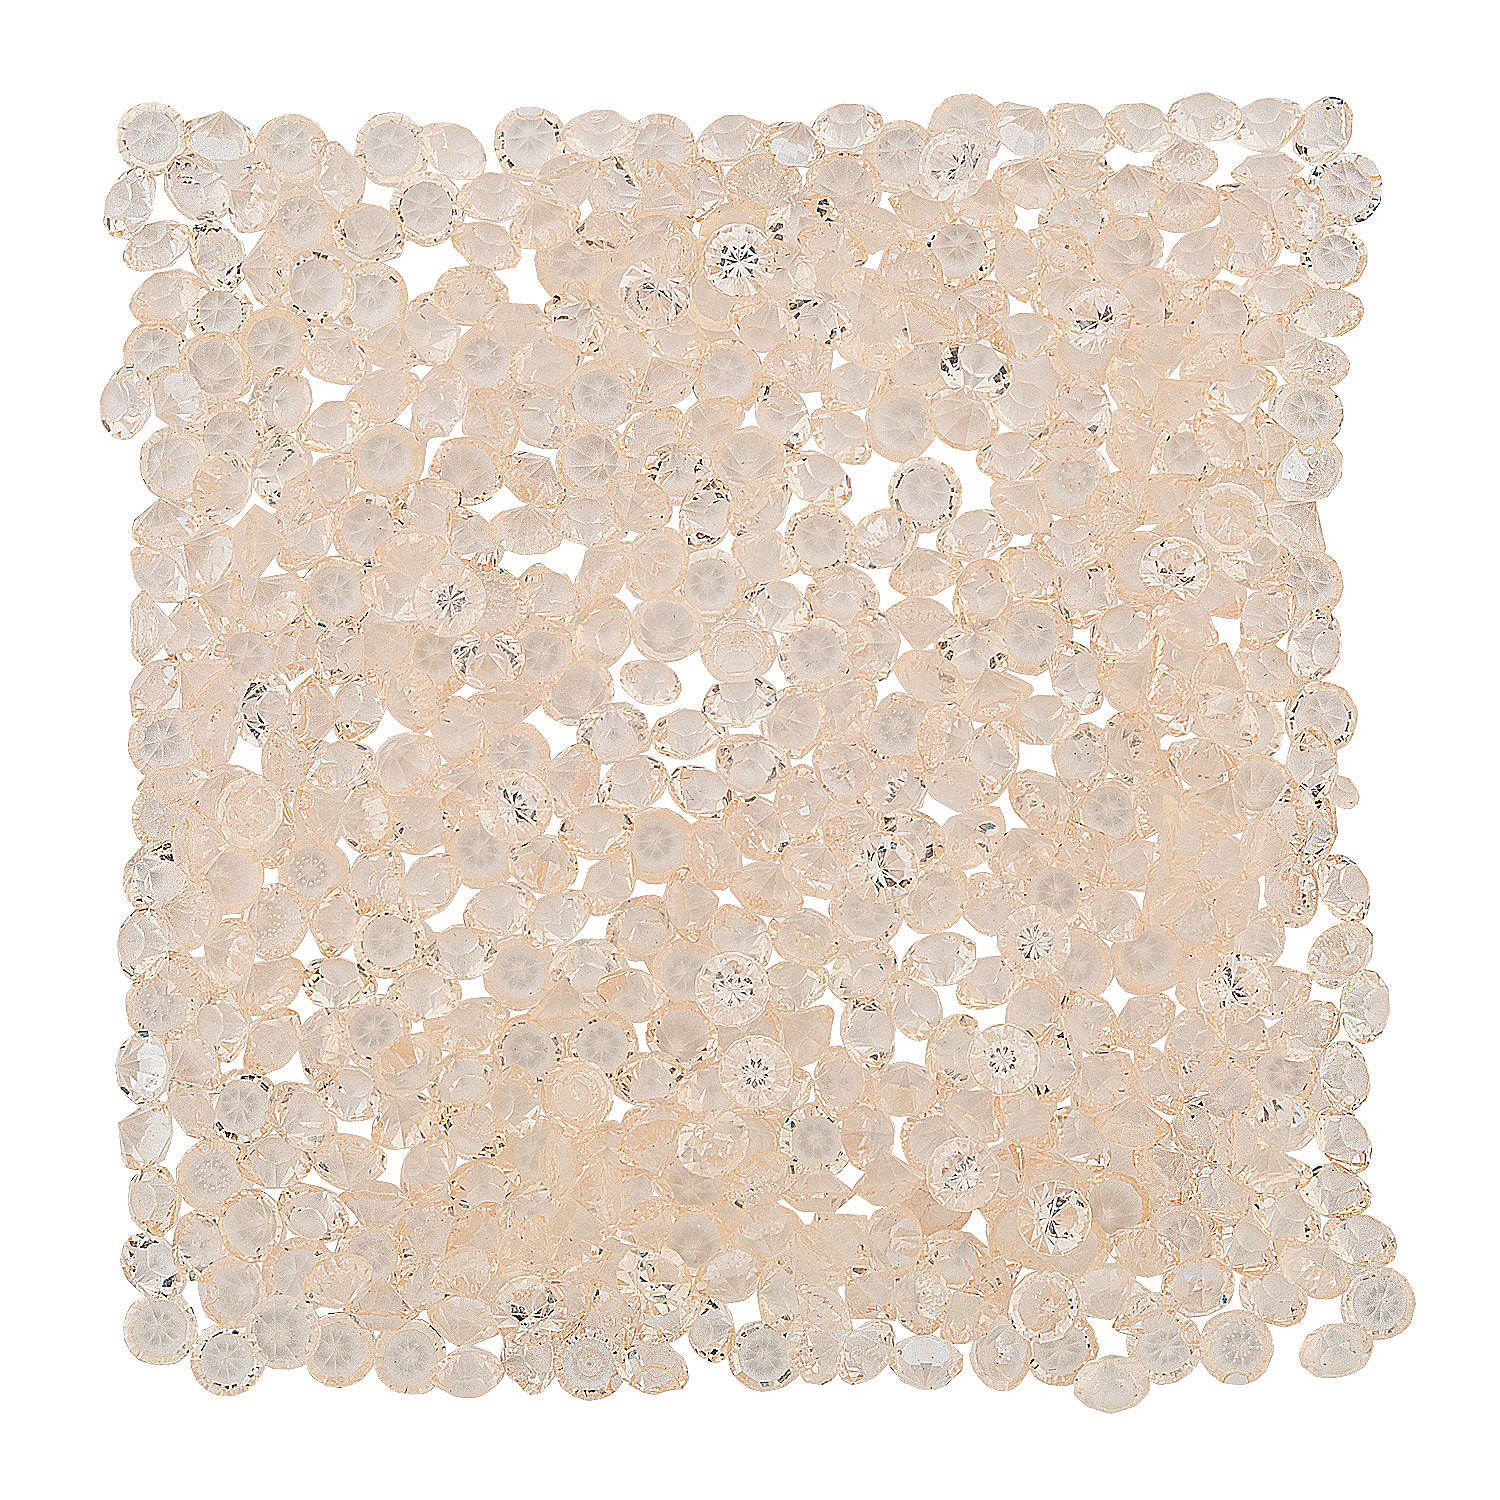 IN-13752416 Champagne Crystals